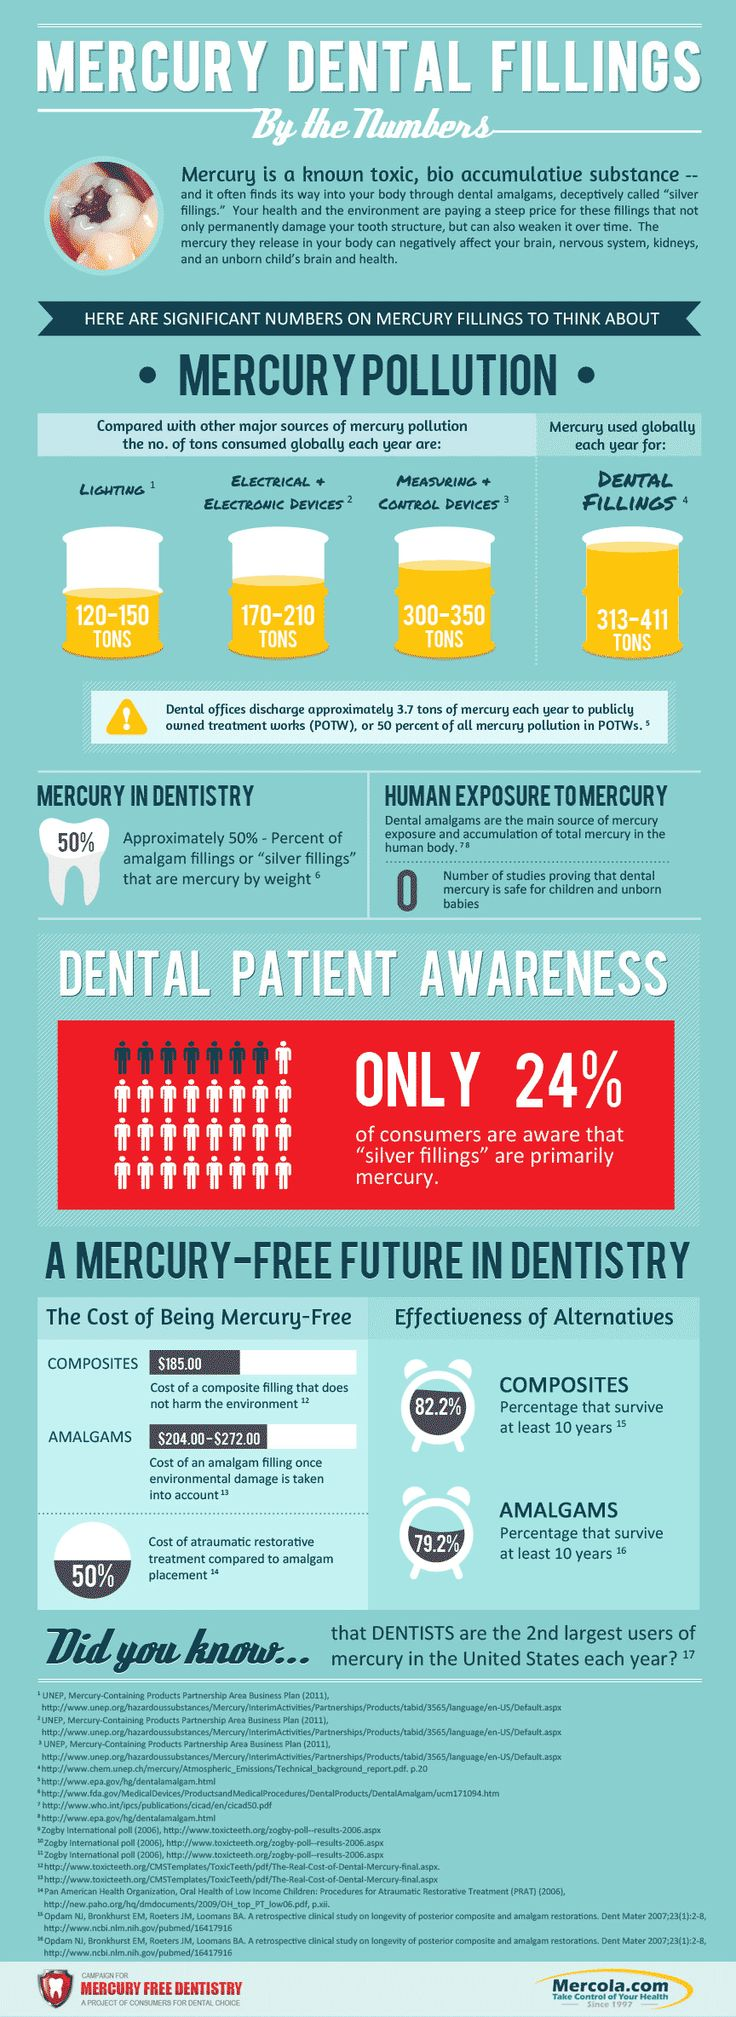 This infographic reveals important facts about mercury dental fillings, including their damaging effects and how you can keep them out of your body. http://www.mercola.com/infographics/mercury-dental-fillings.htm